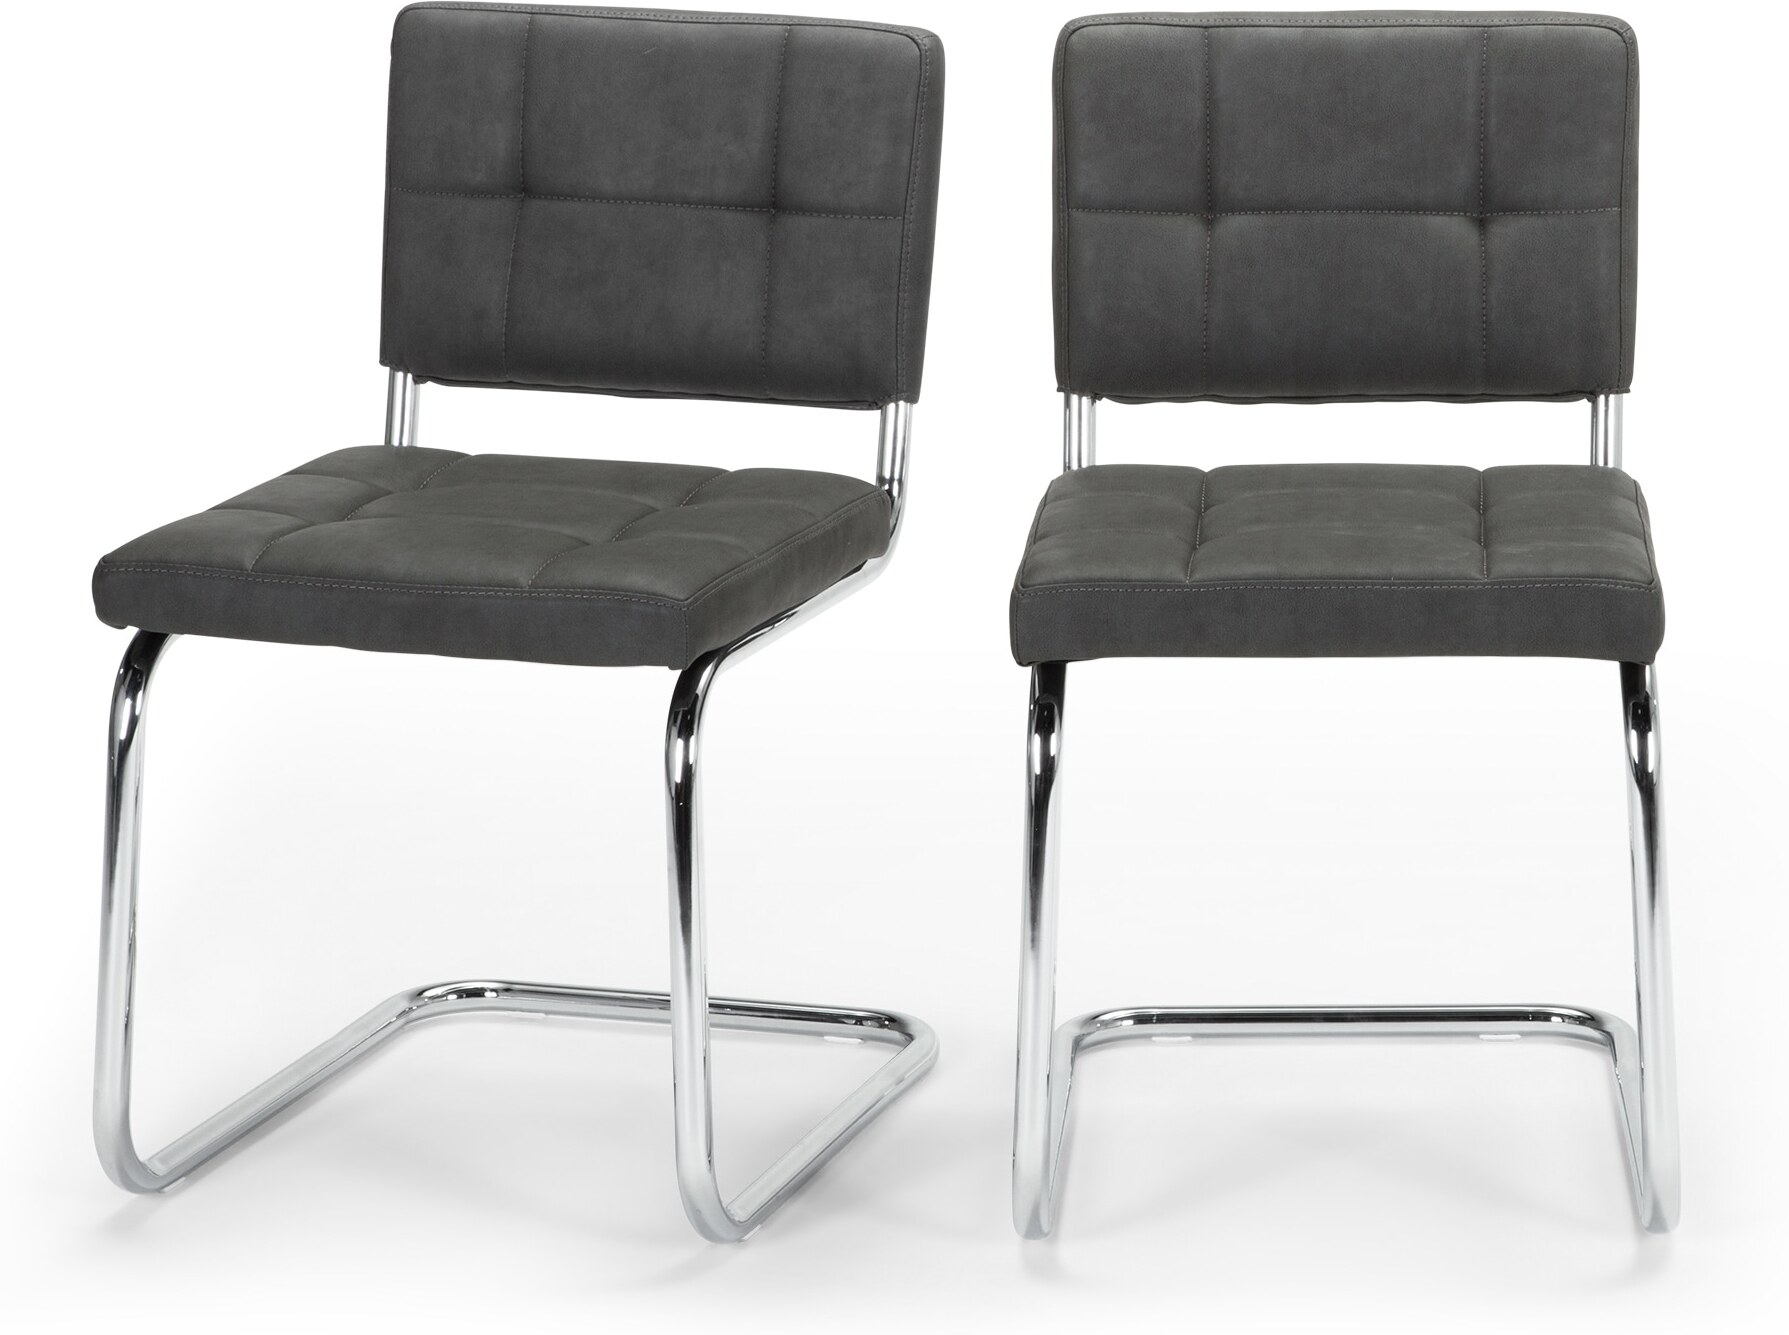 Image of 2 x Aston Dining Chairs, Raven Black